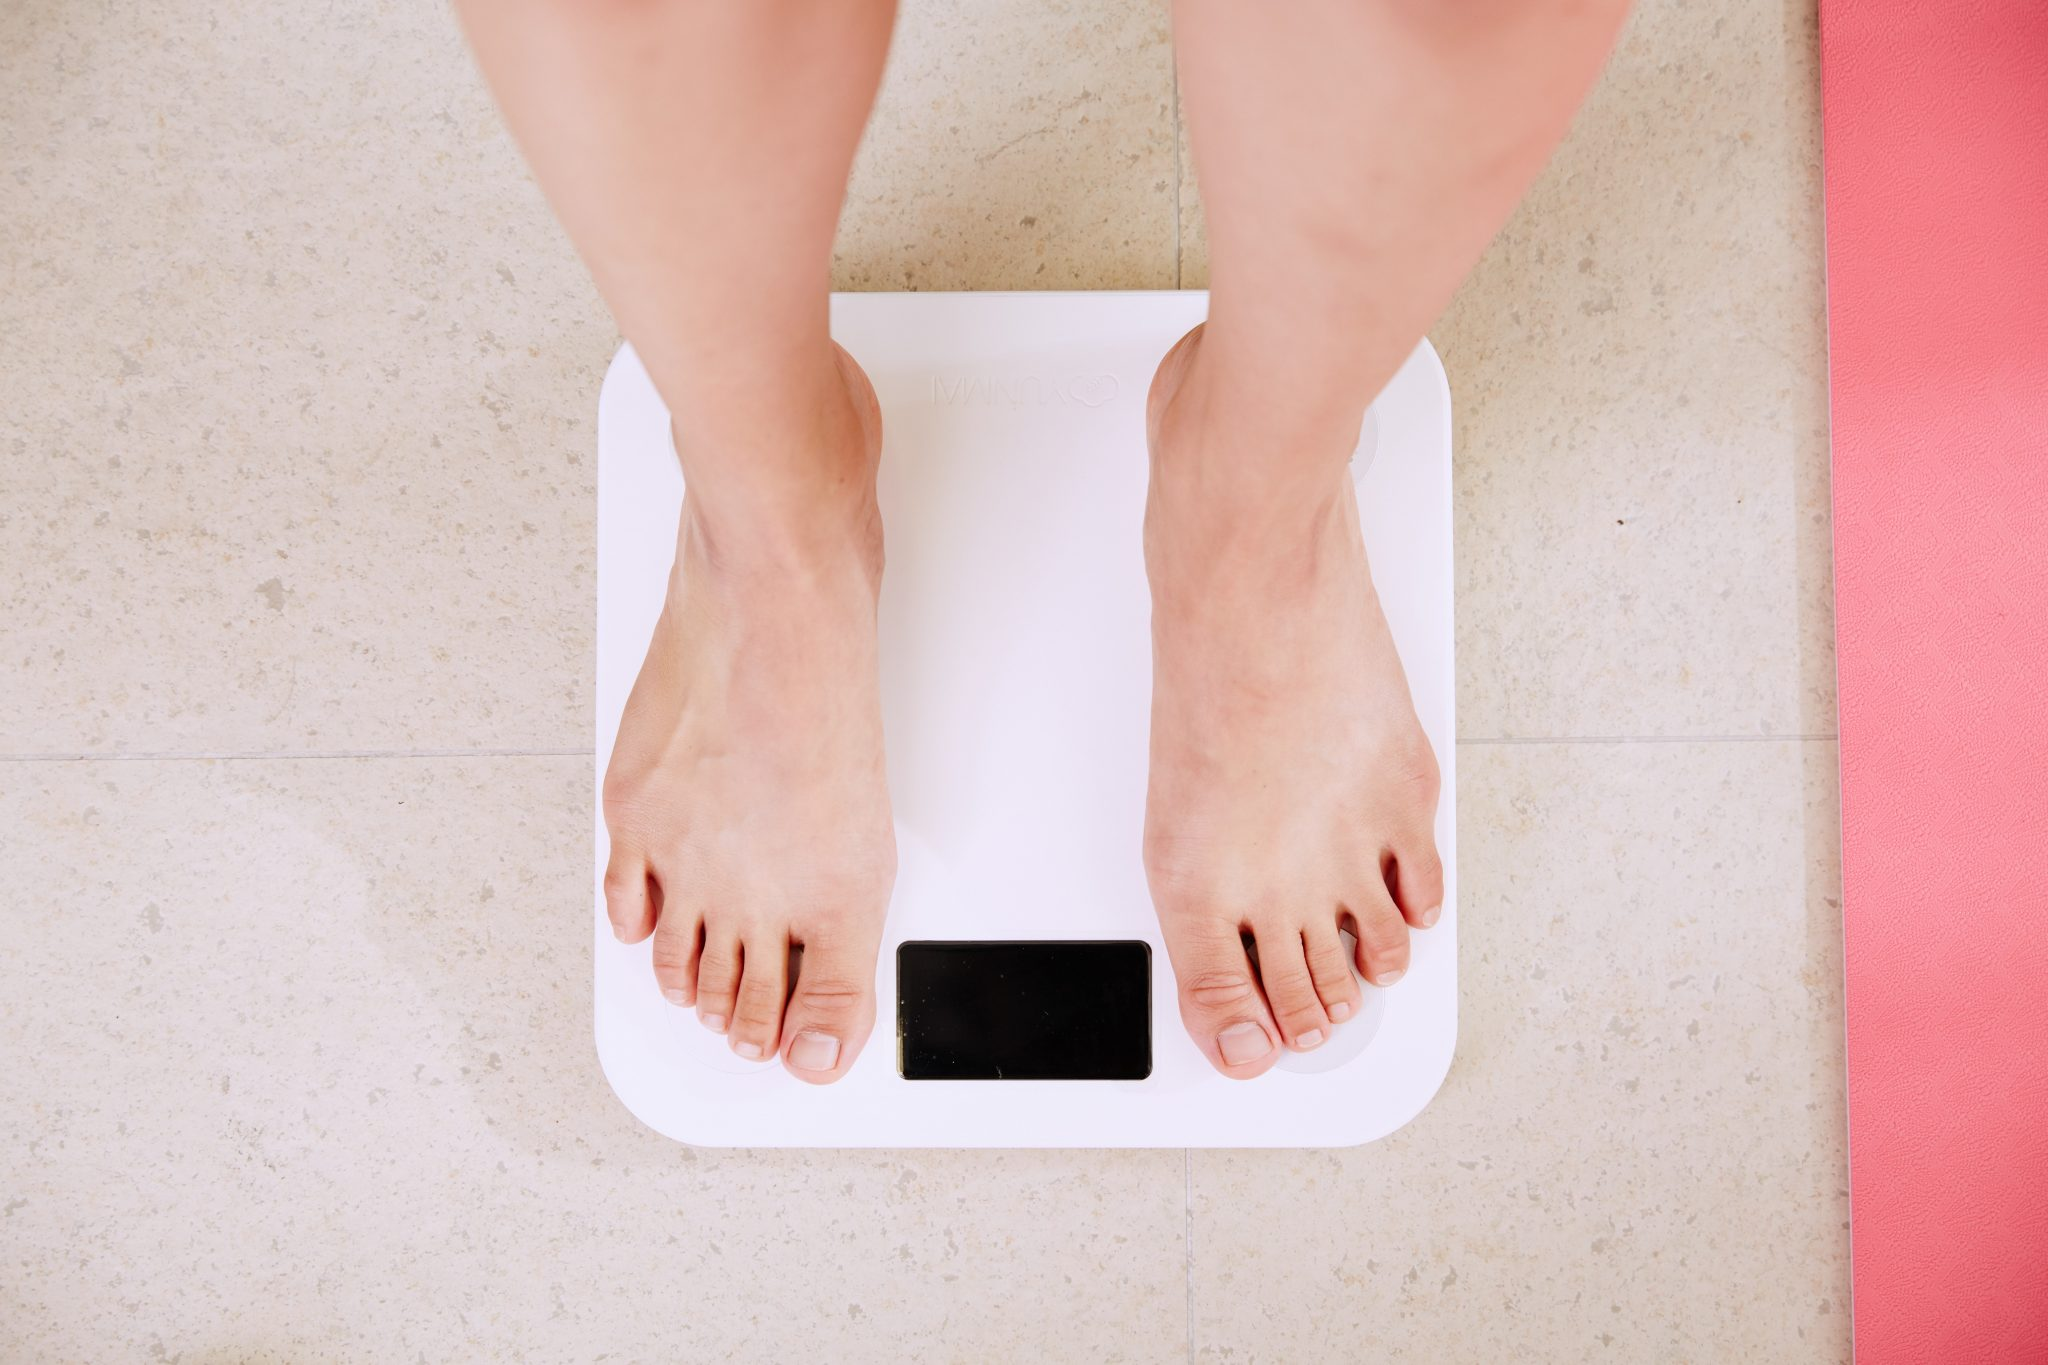 How to ditch the scales